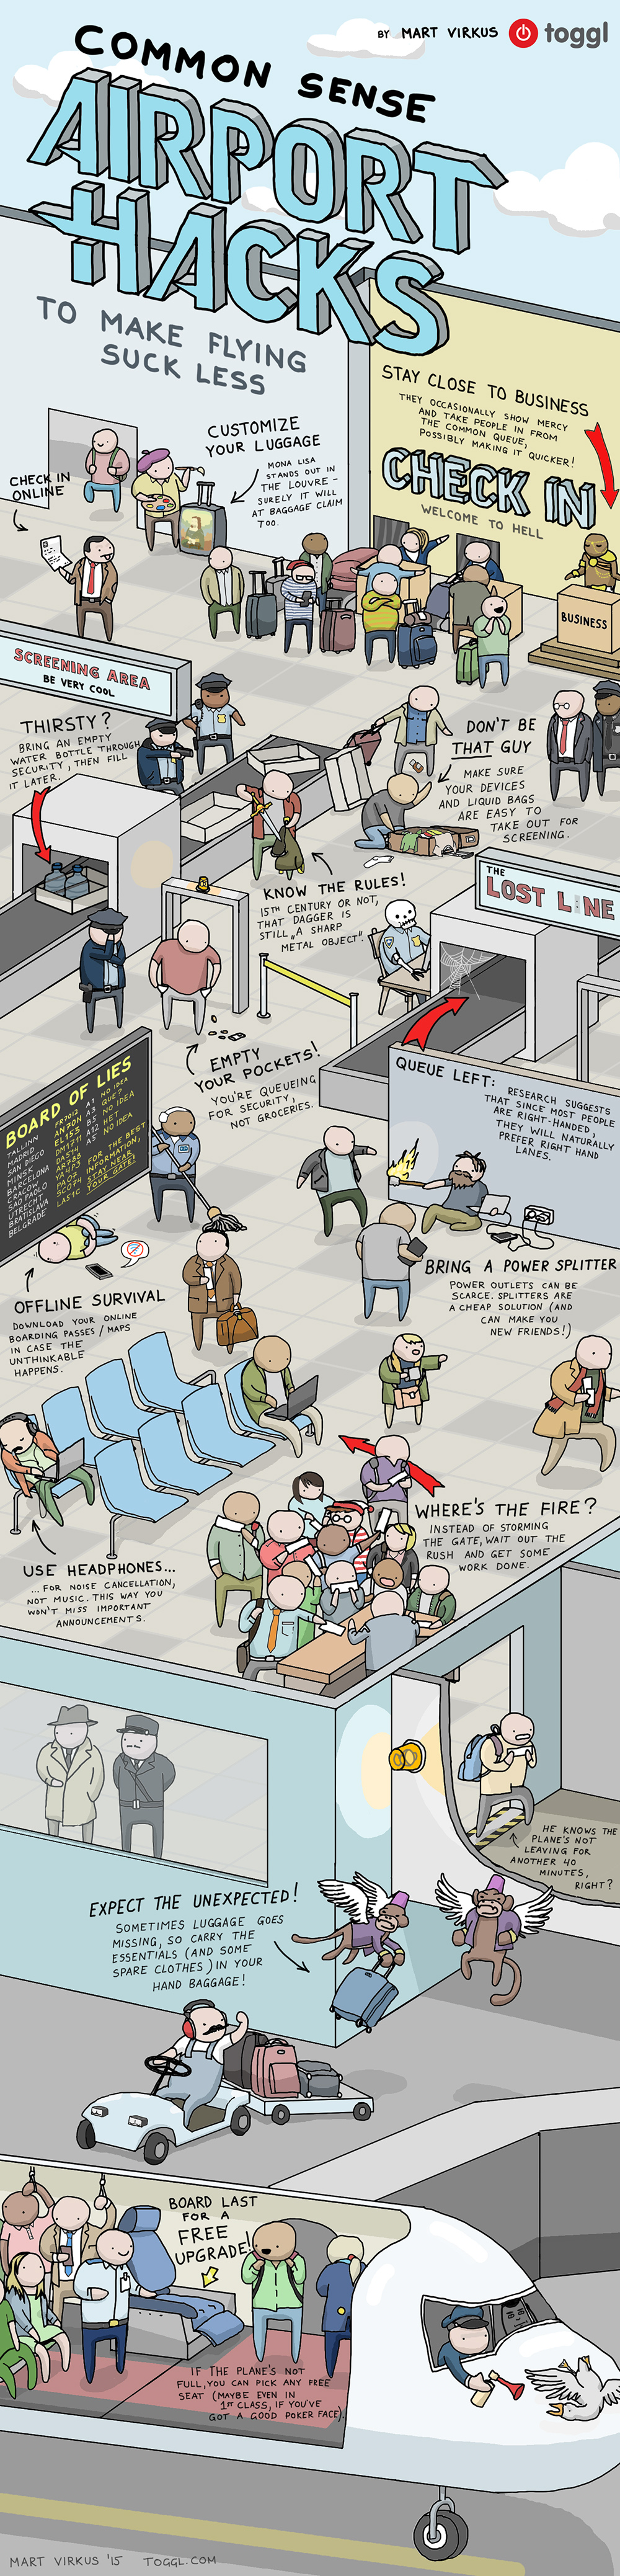 infographic on useful airport hacks and tips